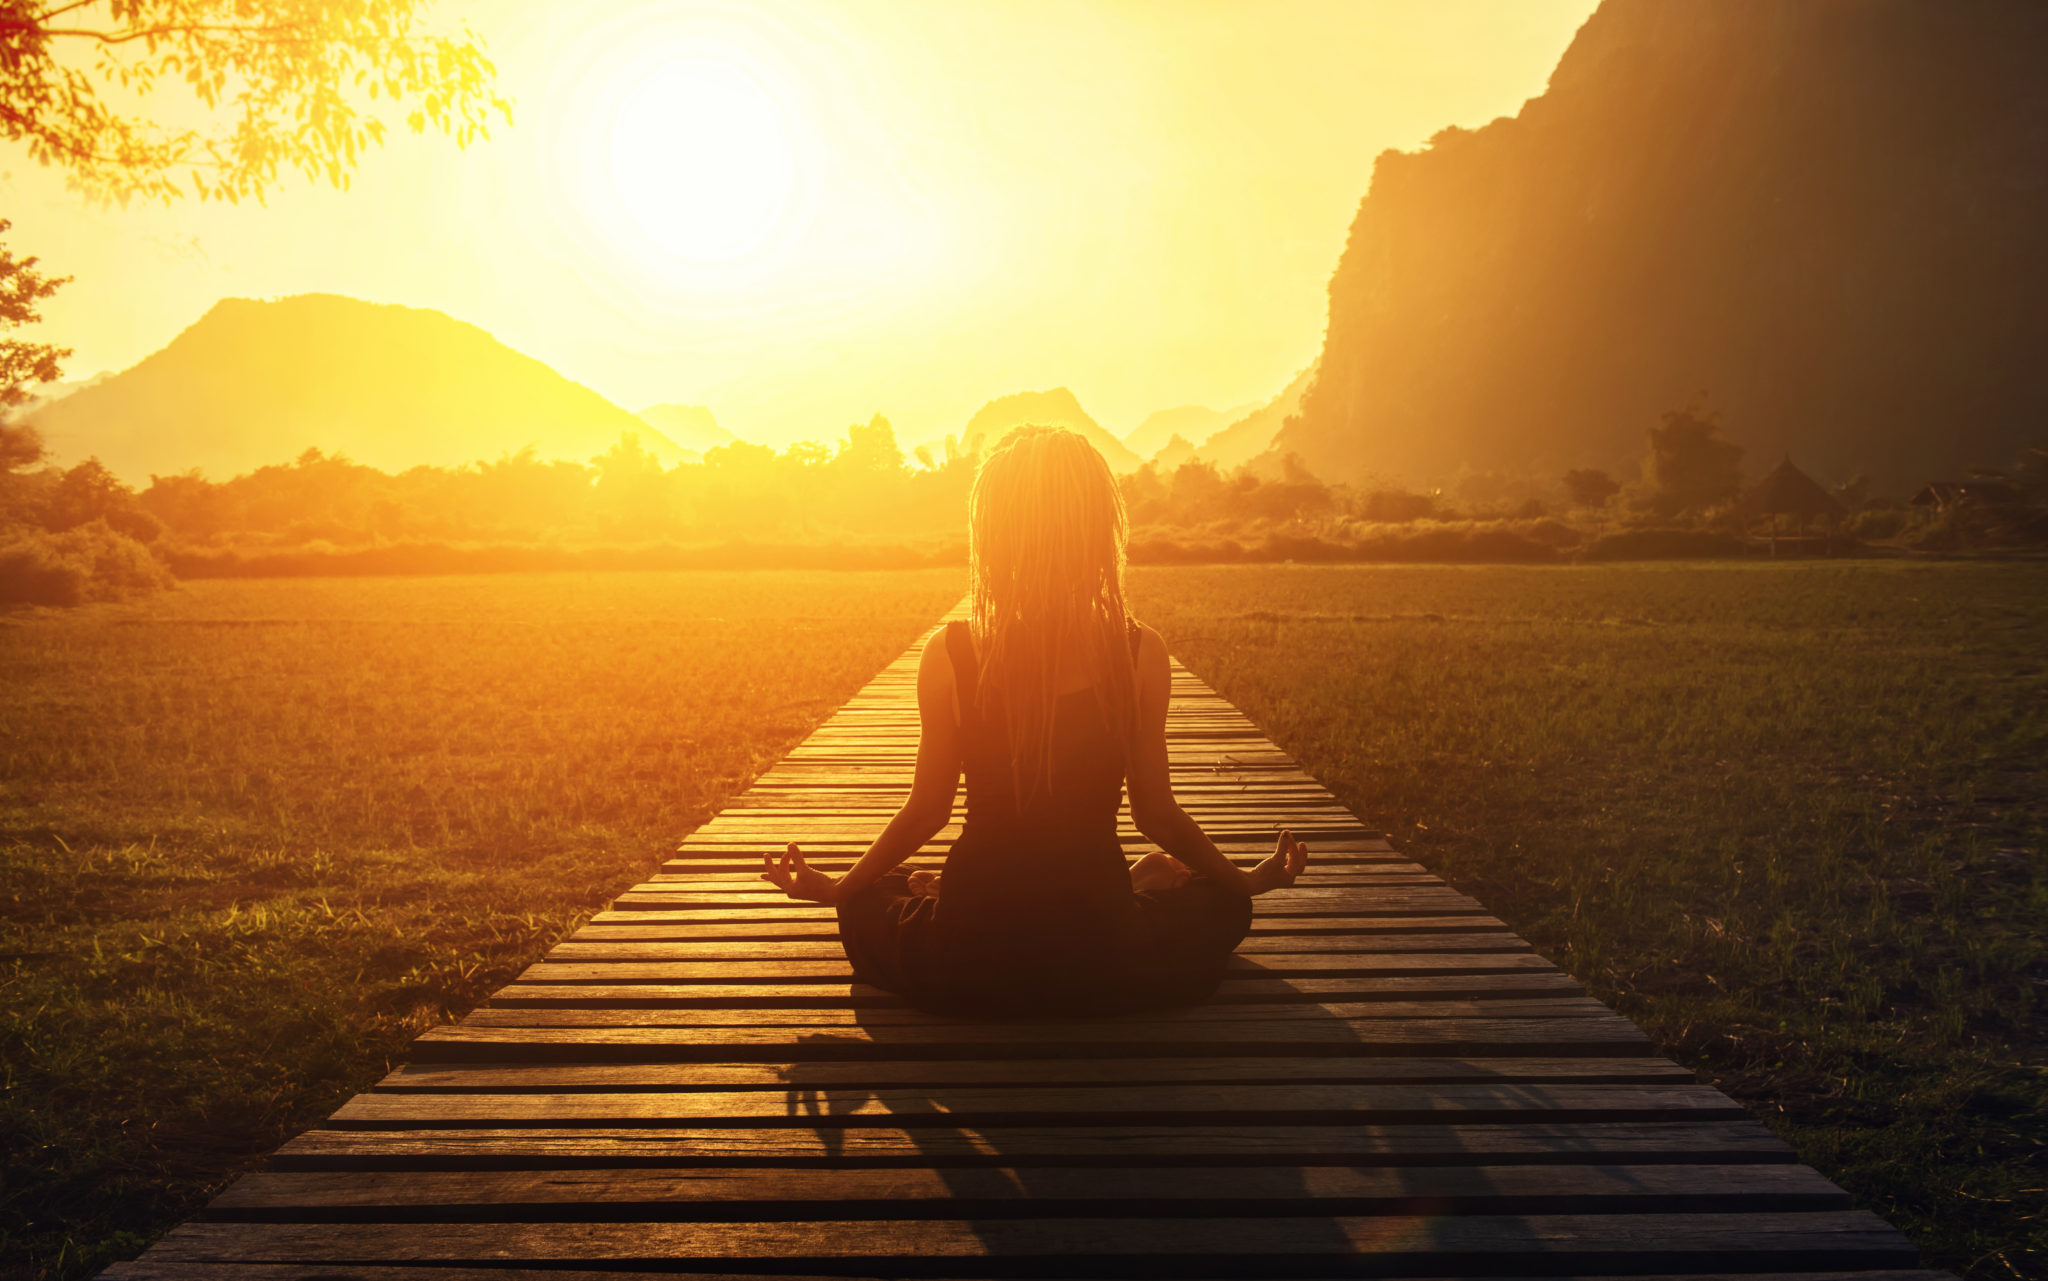 Meditation and brain health: meditation improves concentration and focus